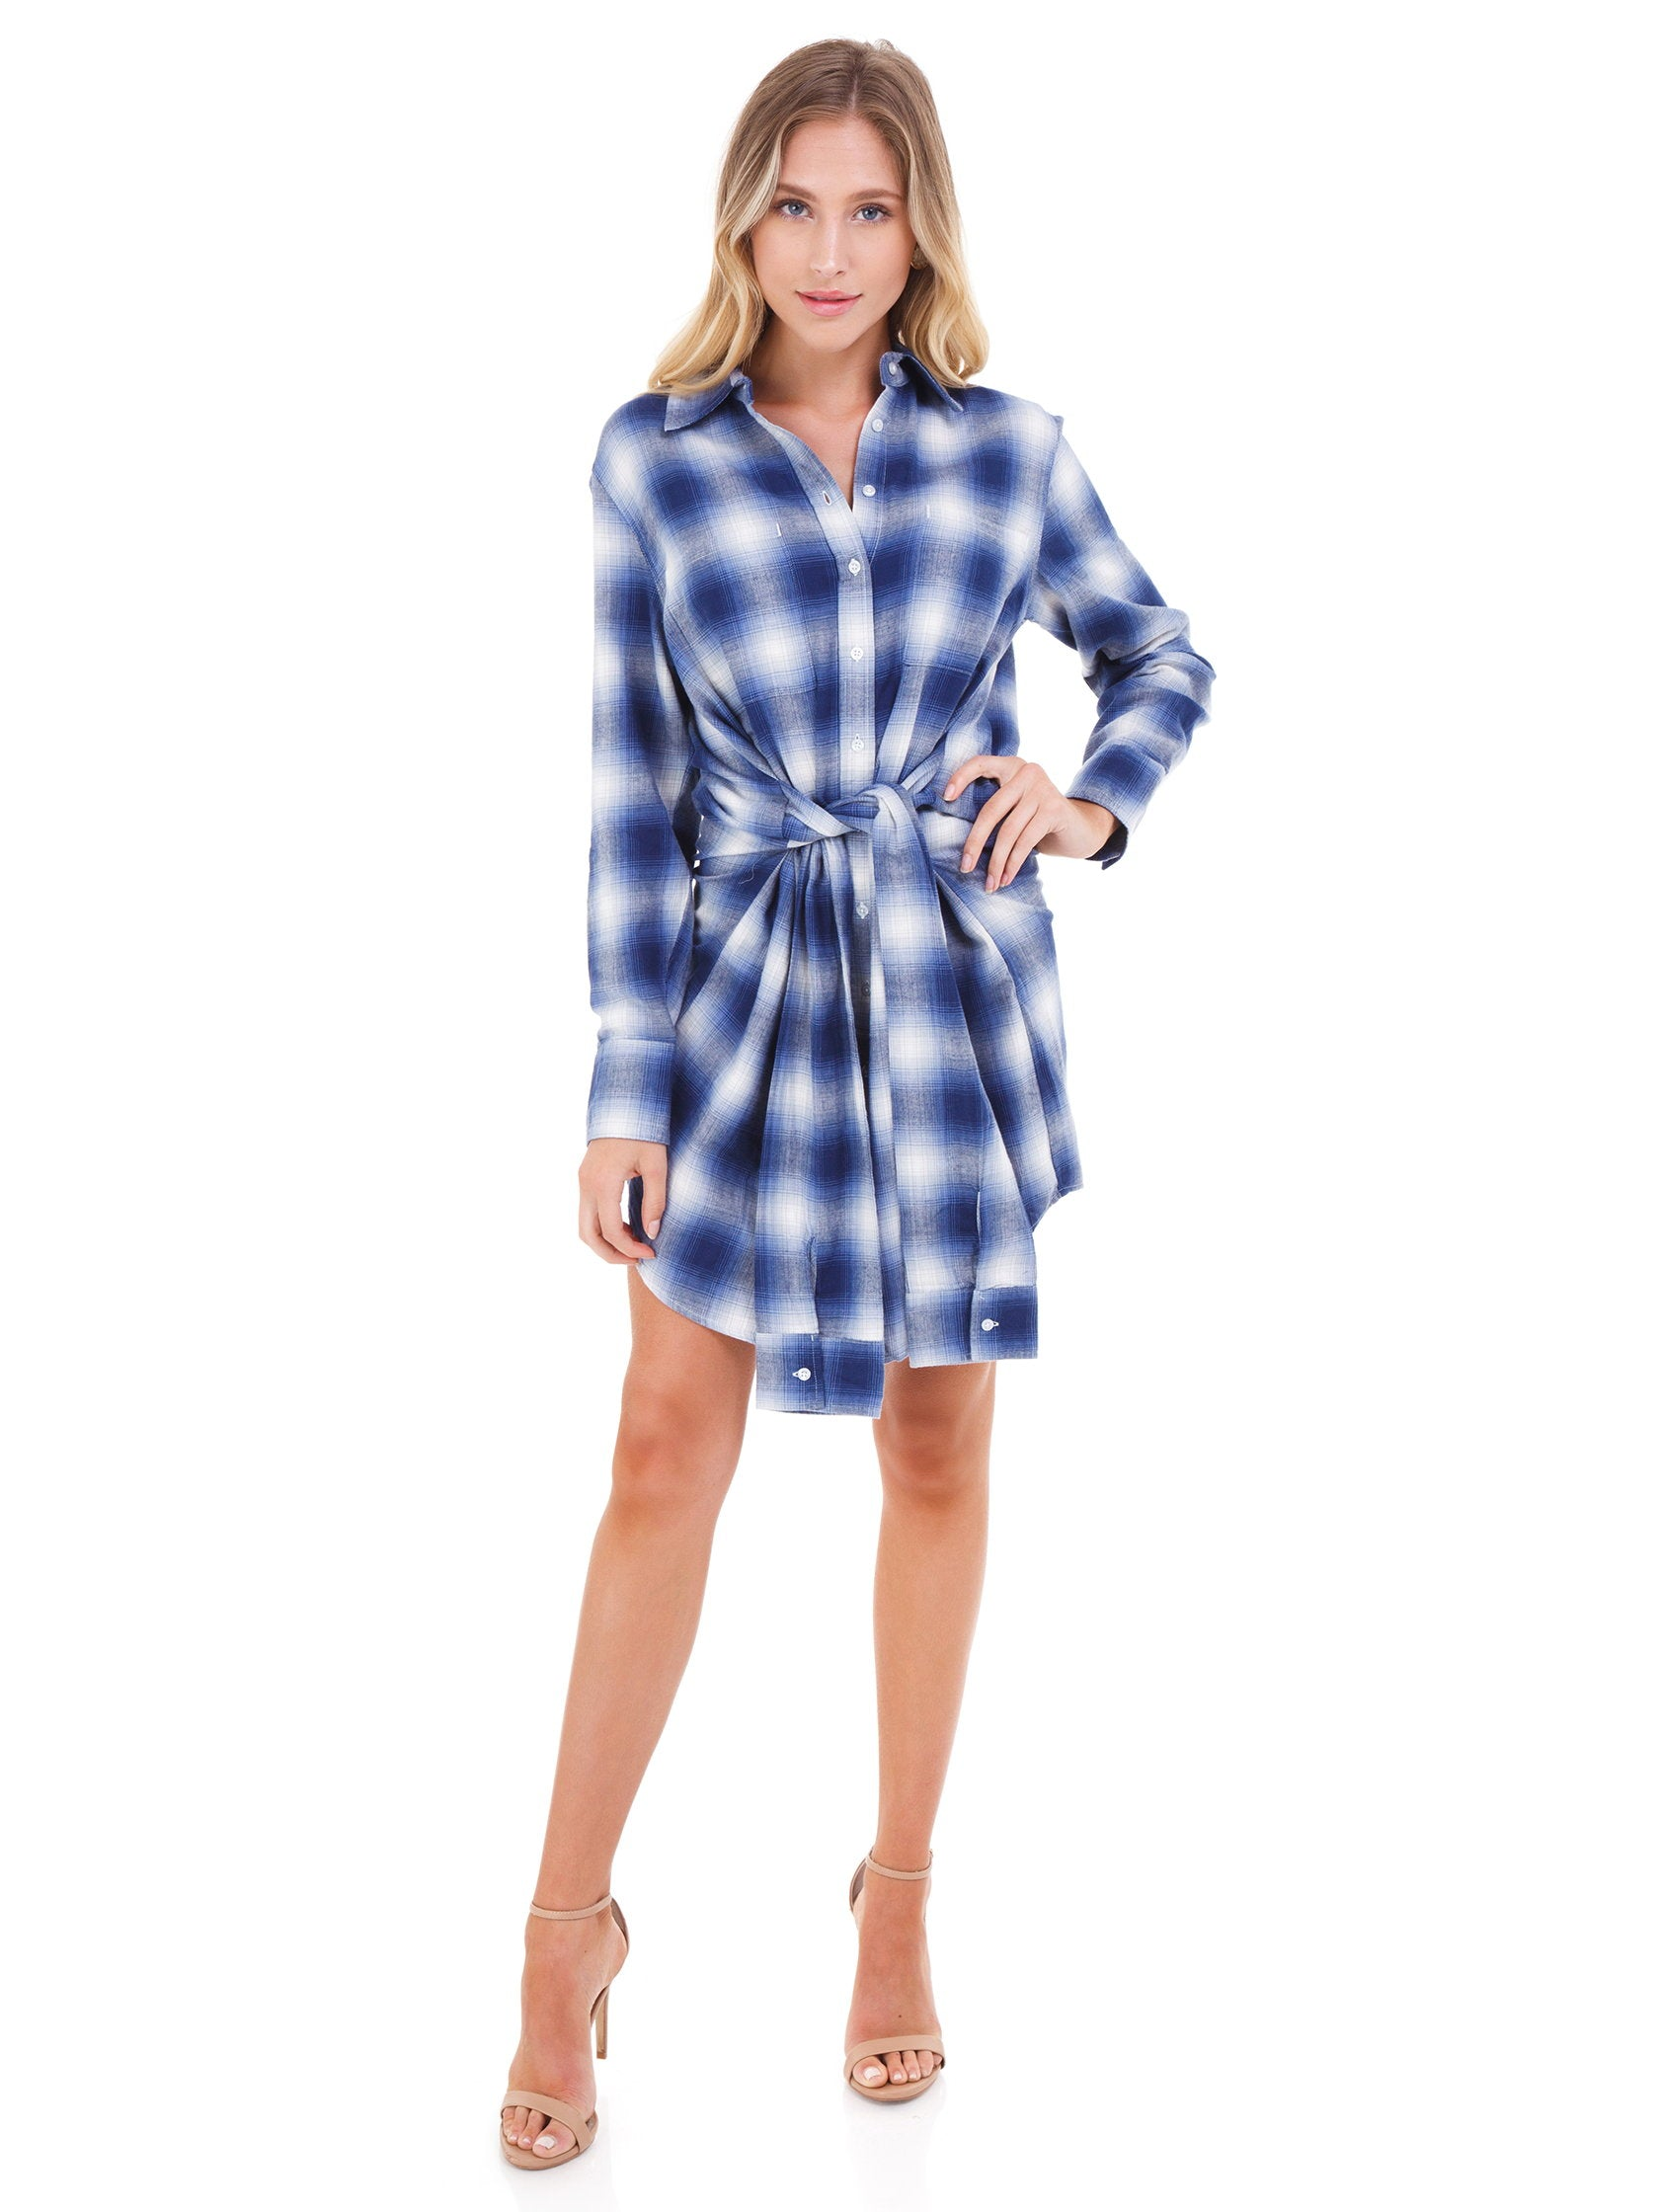 Girl outfit in a dress rental from PISTOLA called Joan Sleeve Tie Shirt Dress